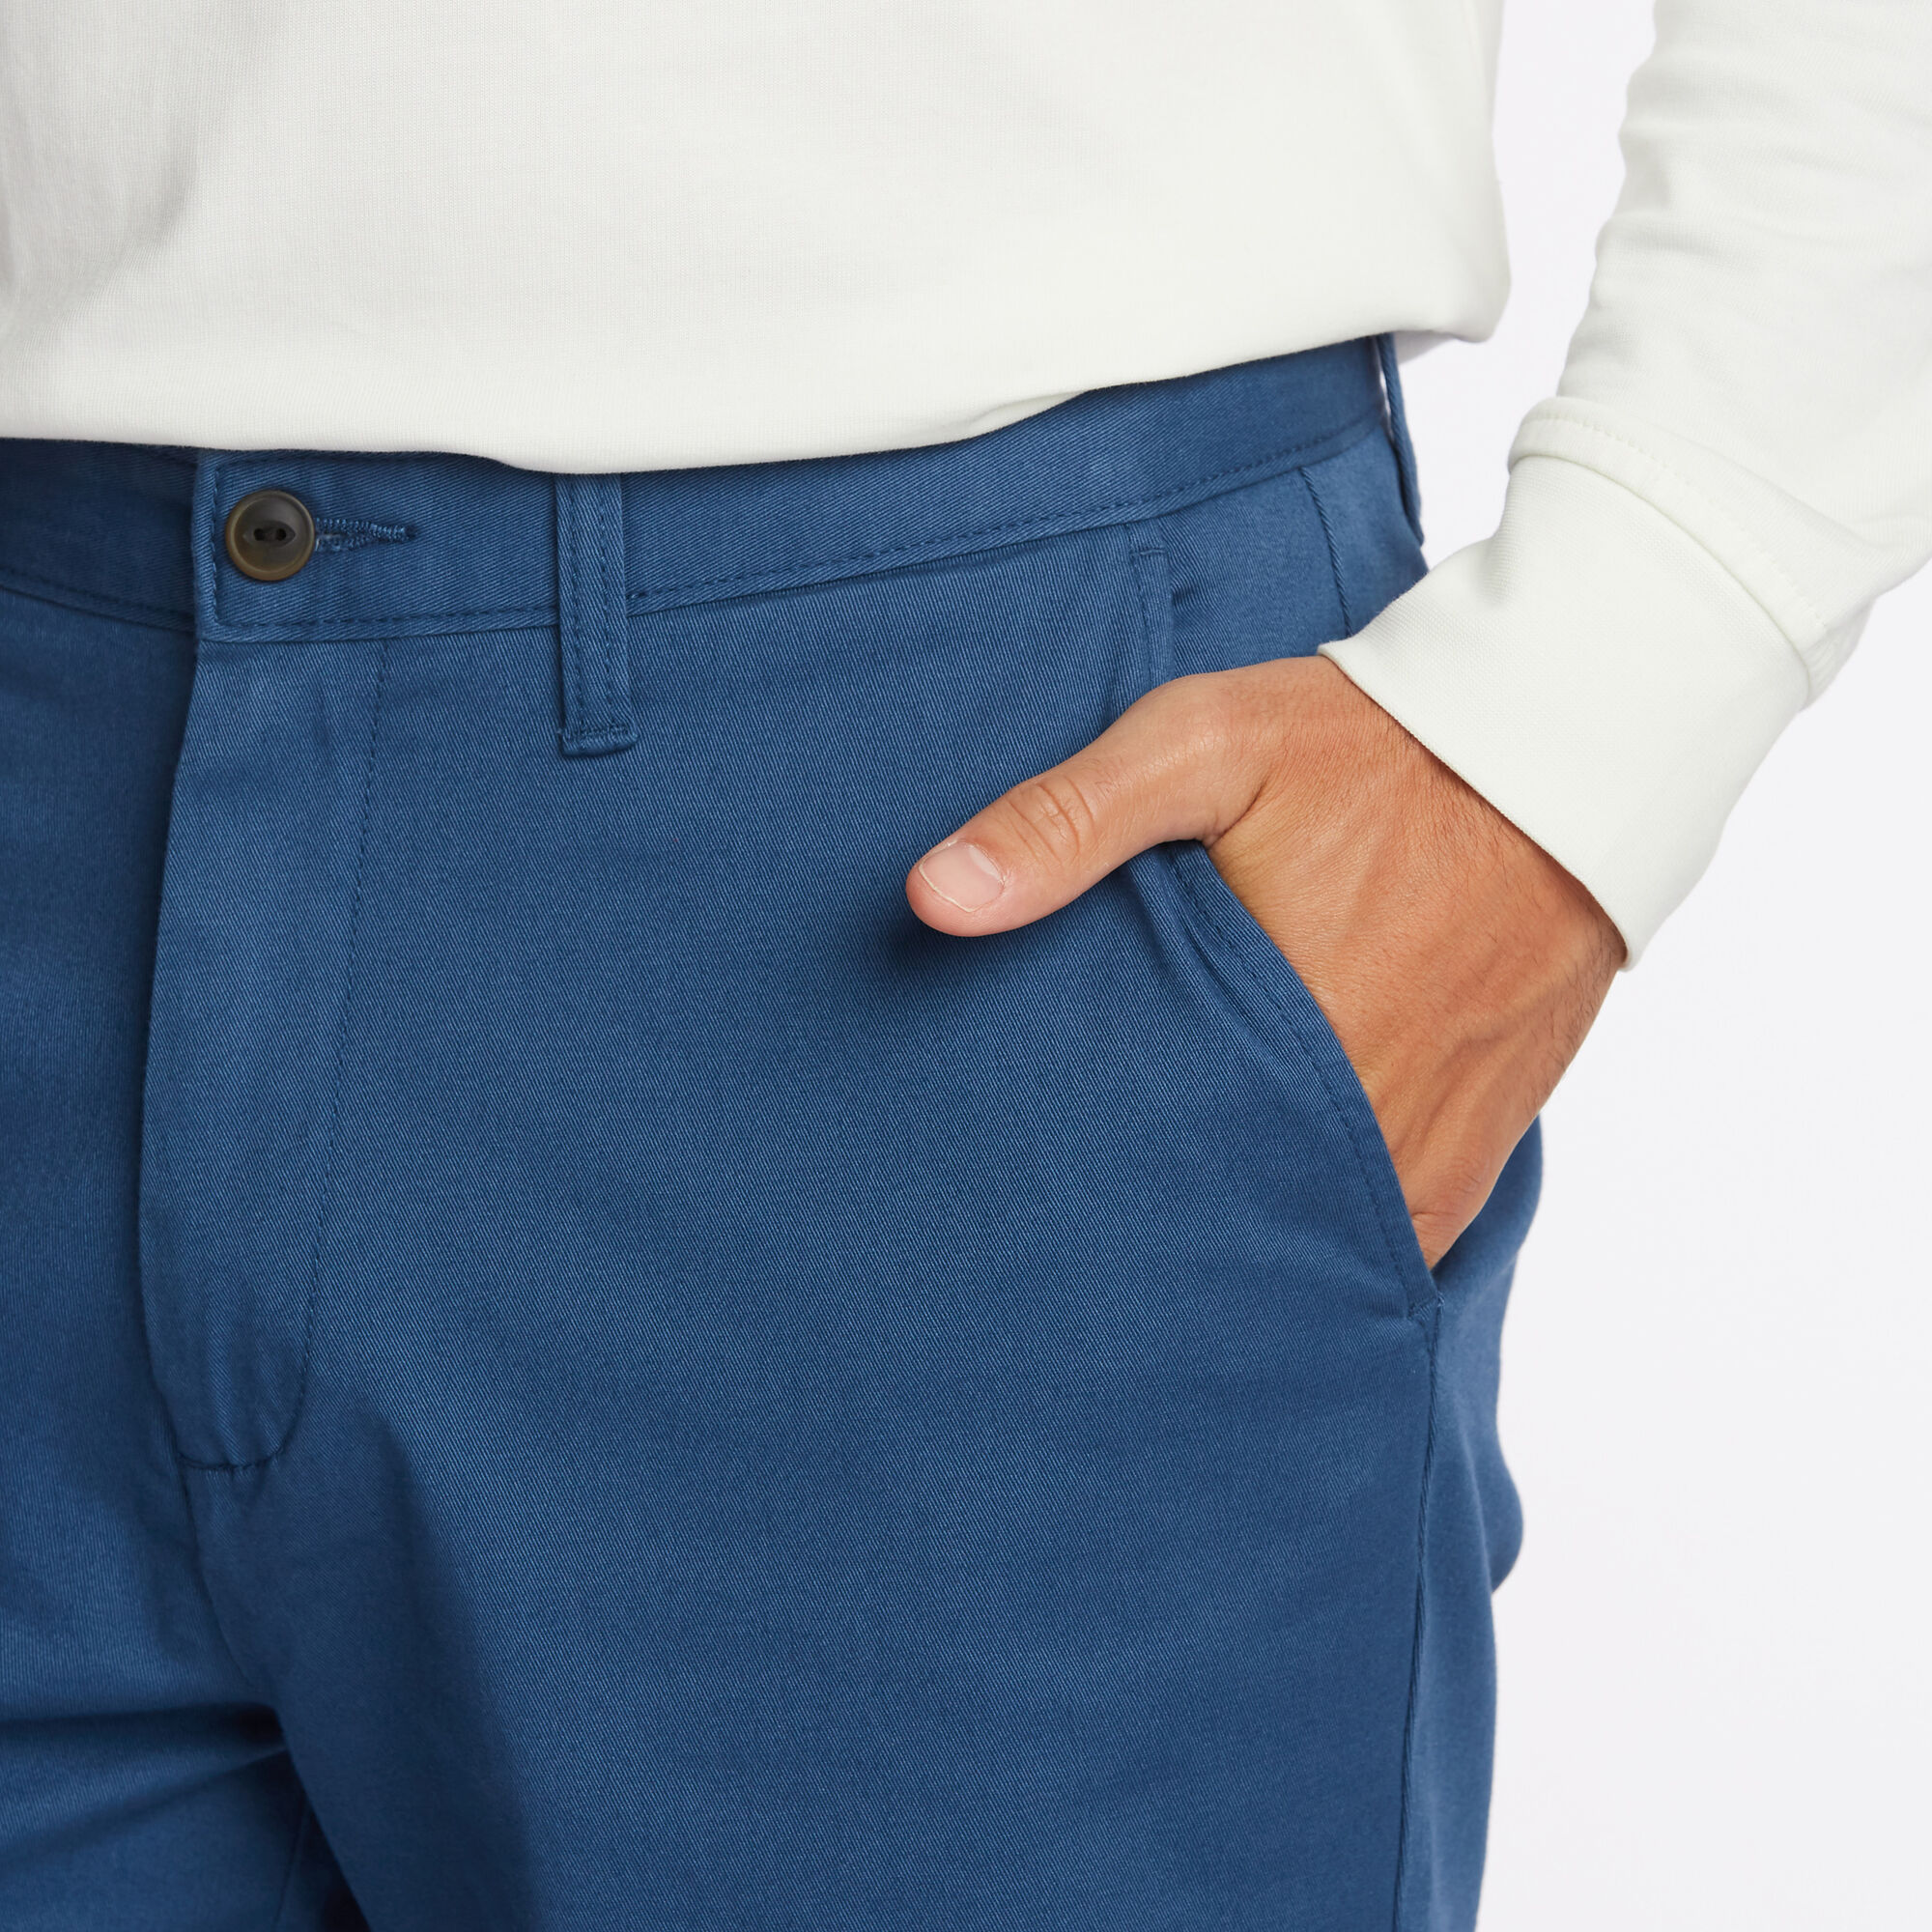 Nautica-Mens-10-034-Classic-Fit-Deck-Shorts-With-Stretch thumbnail 14